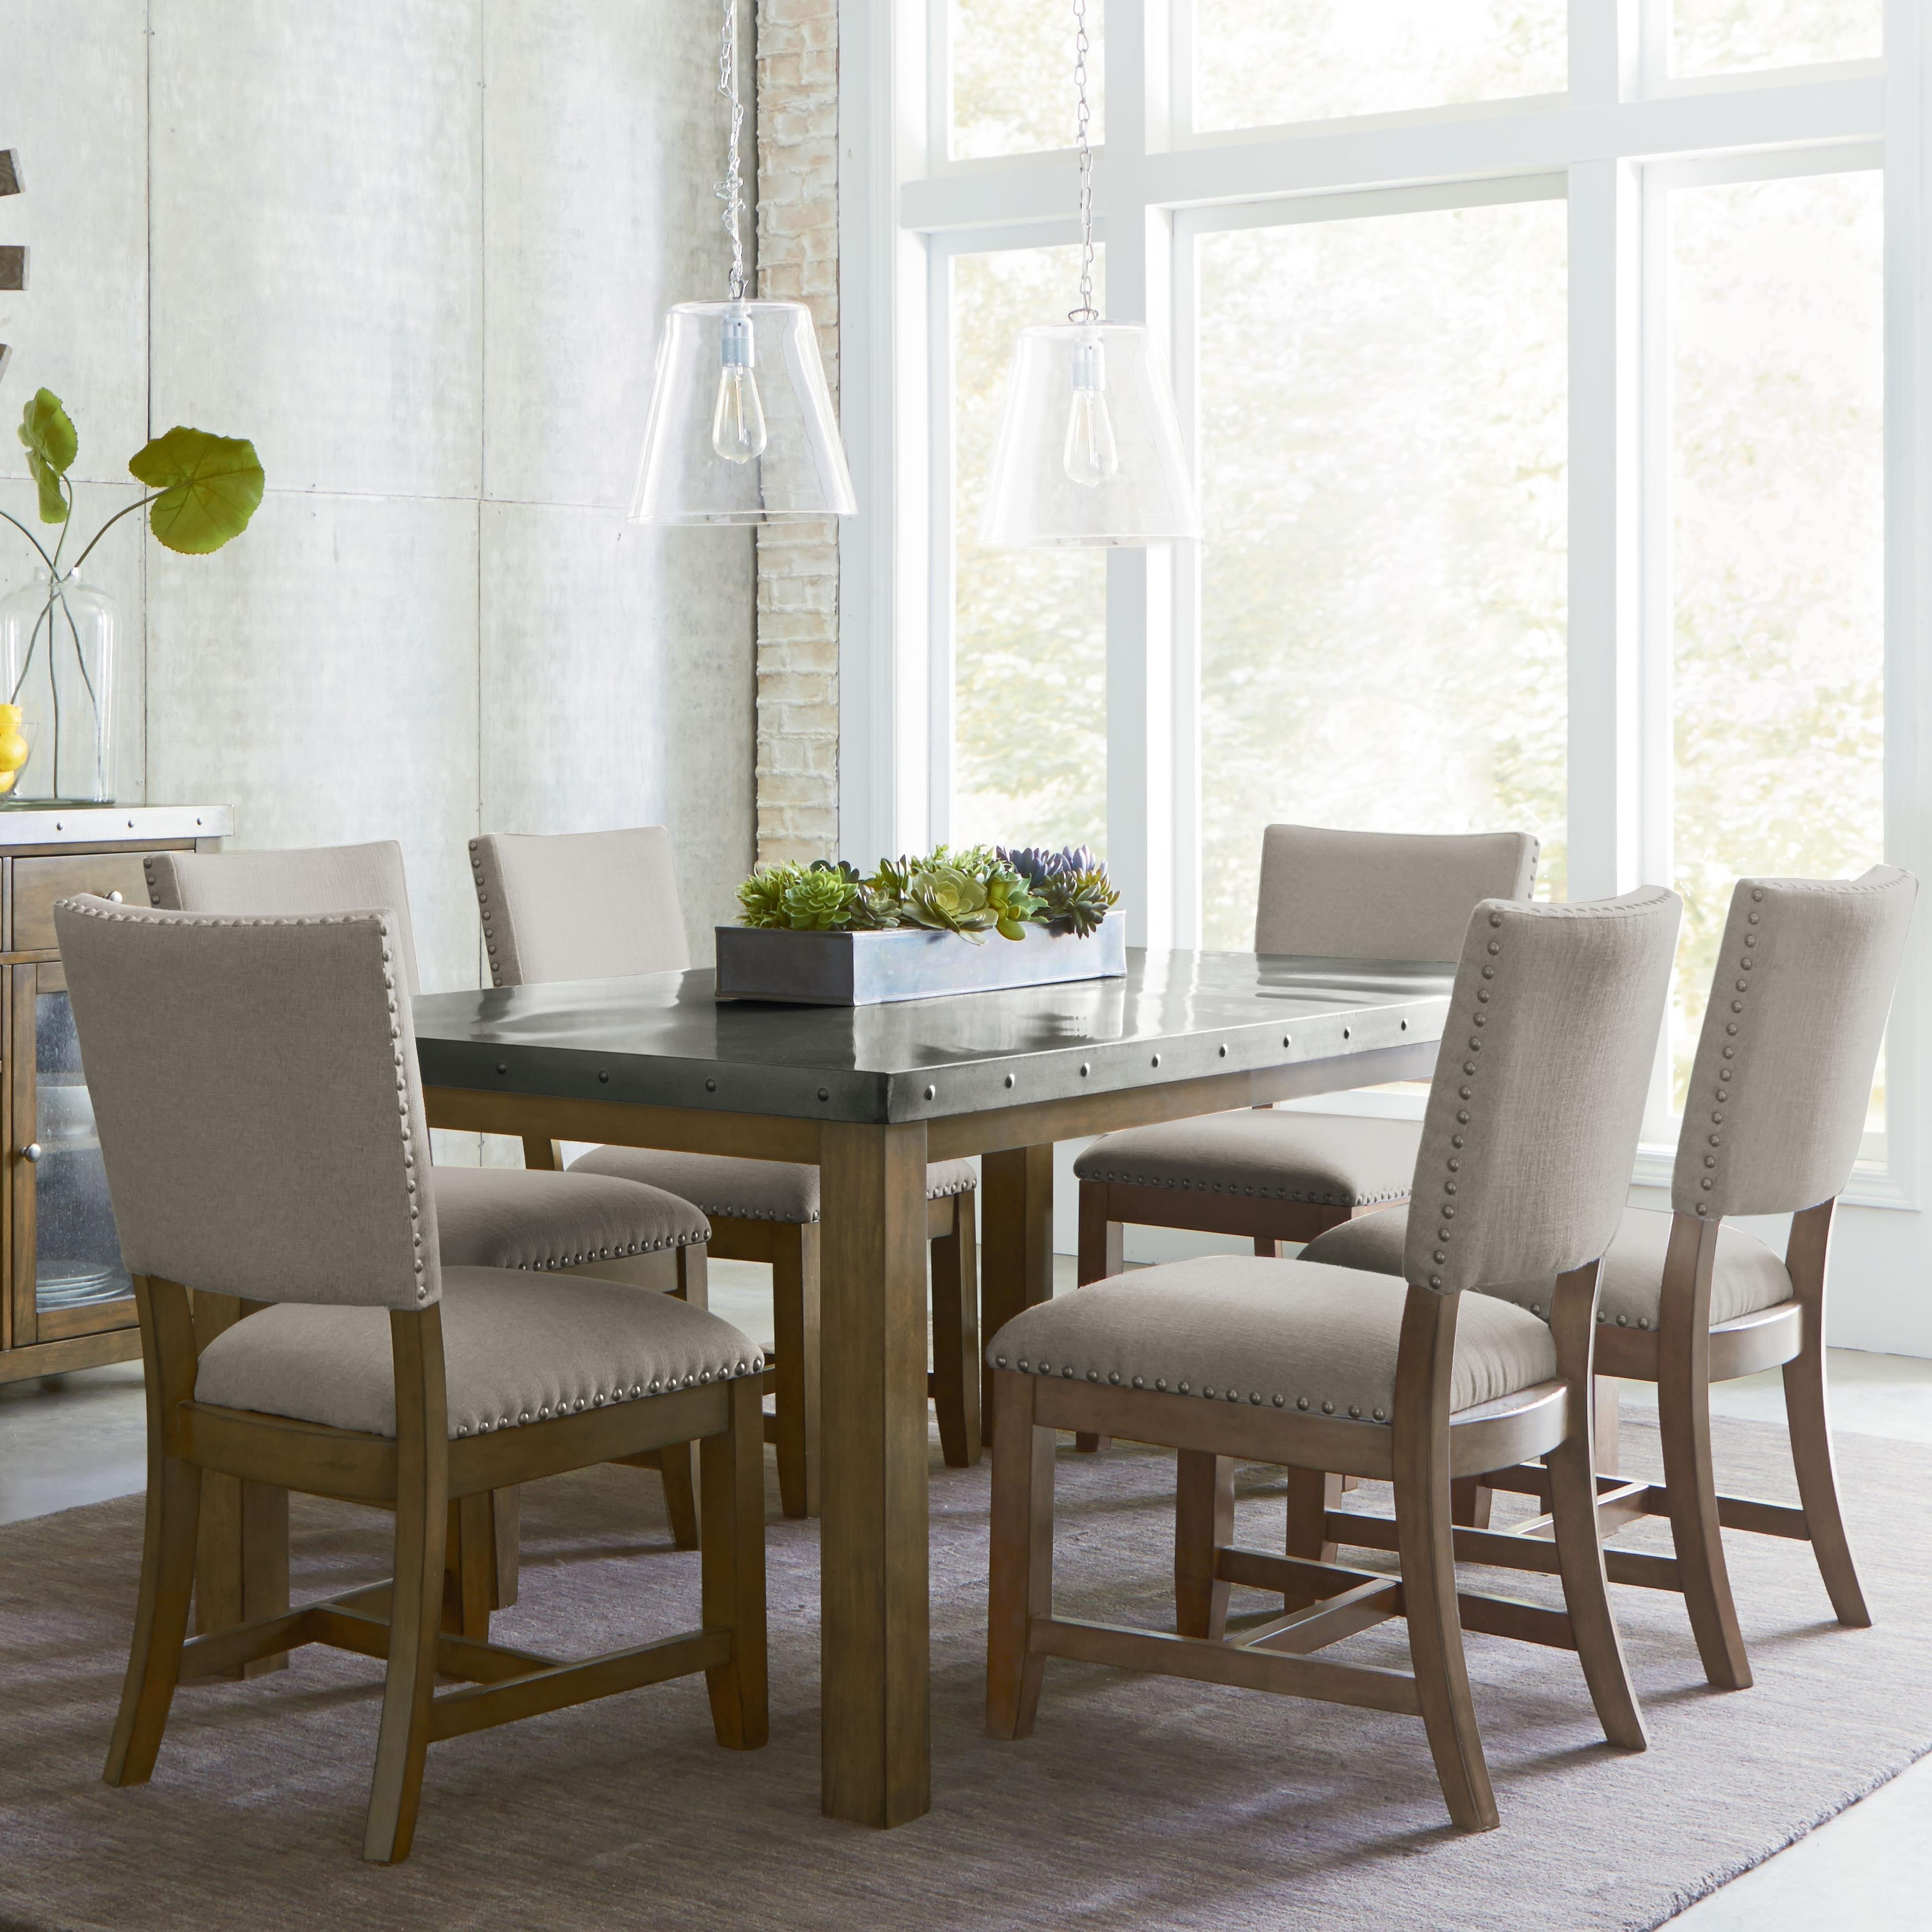 Metal Top Wyatt Dining Table World Market Regarding Inspirations 3 Throughout Best And Newest Wyatt Dining Tables (View 23 of 25)